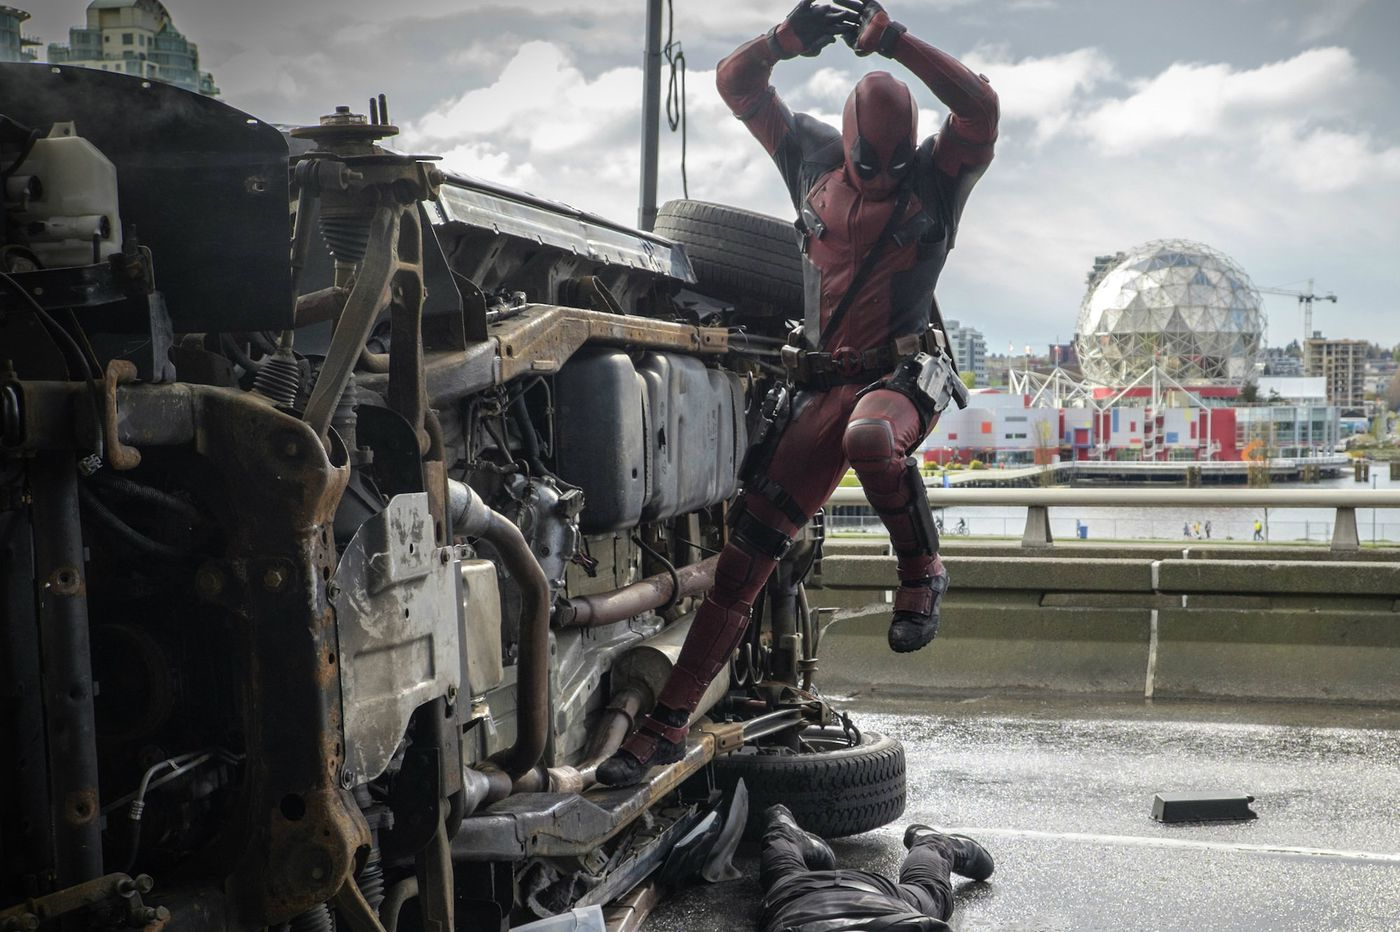 'Deadpool': Fun, but sophomoric tale of mercenary with foul mouth